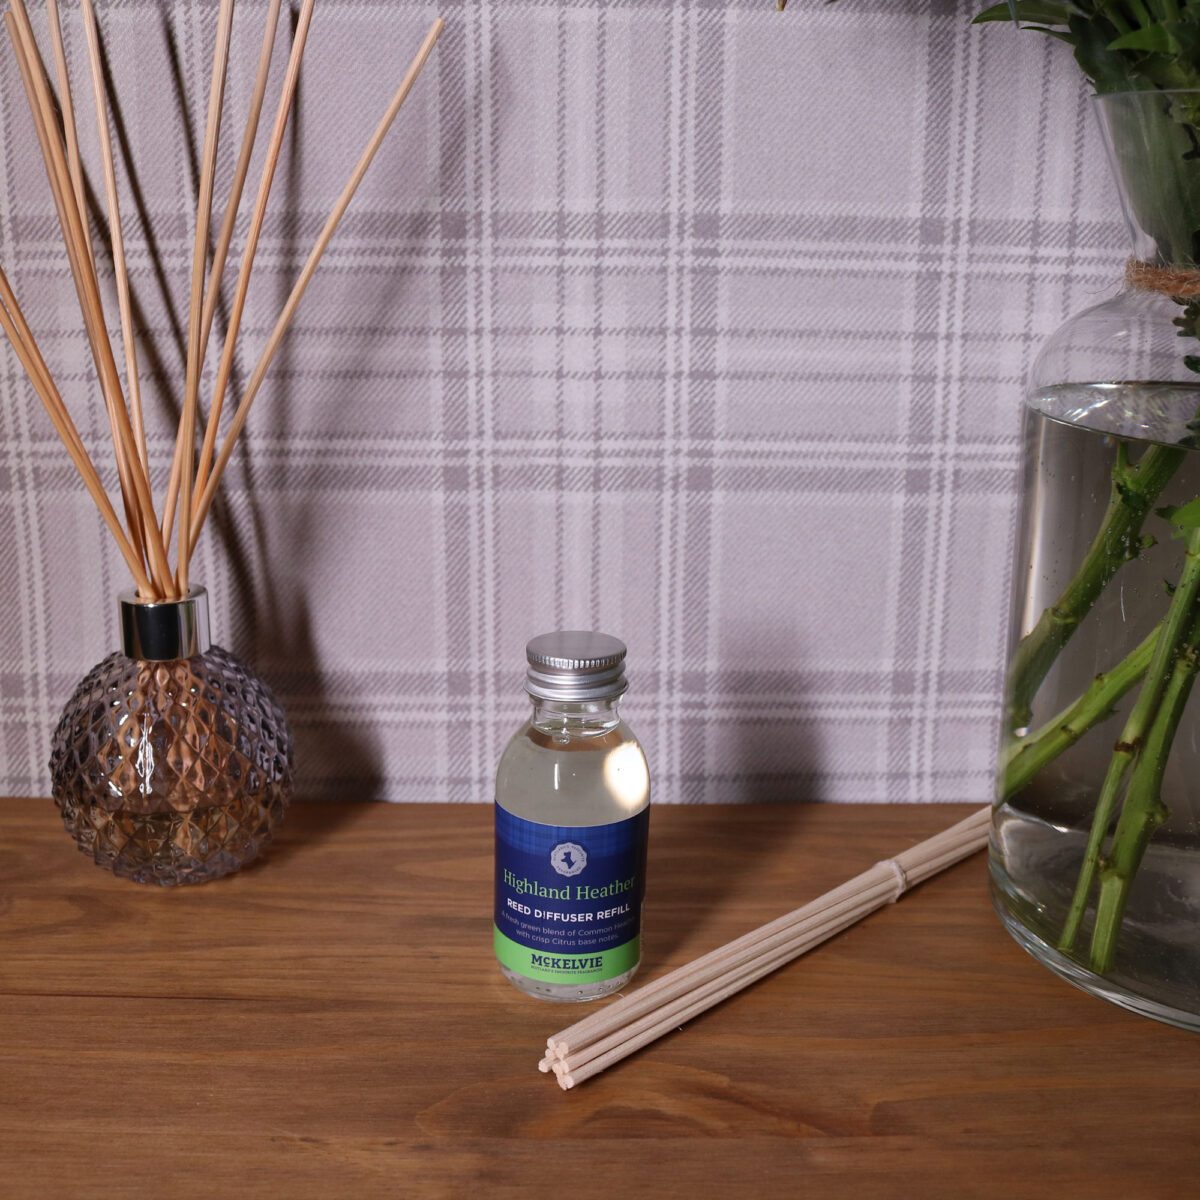 Highland Heather Reed Diffuser Refill